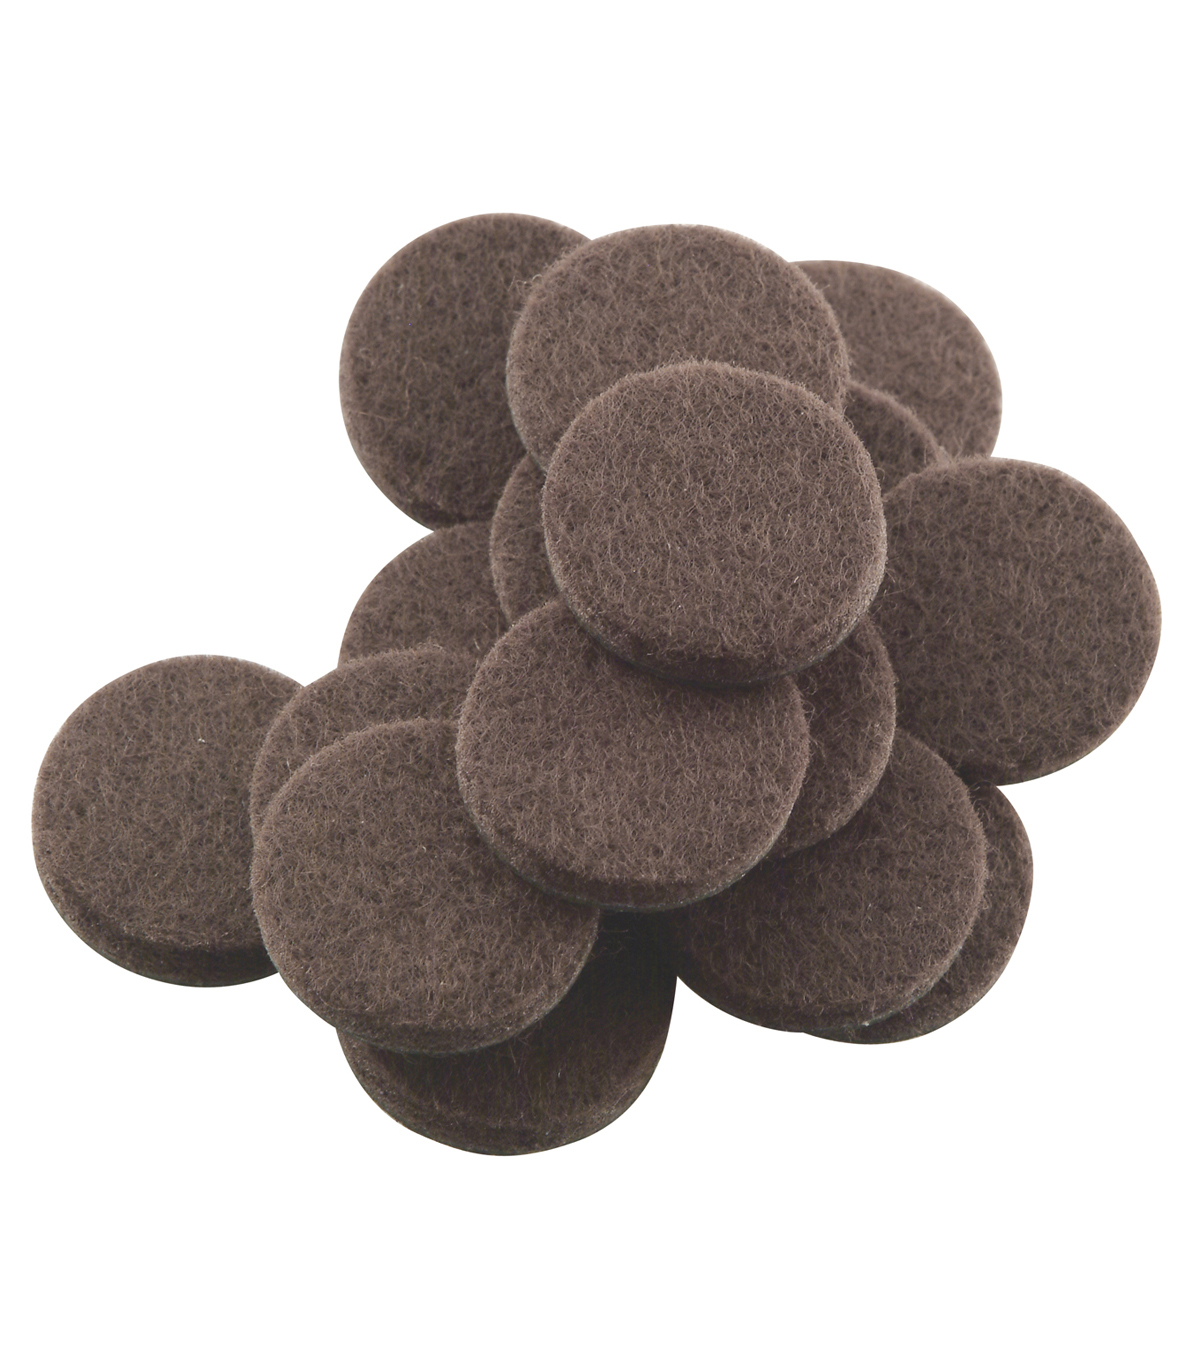 Felt Furniture Pads 1\u0022 48 Count-Brown